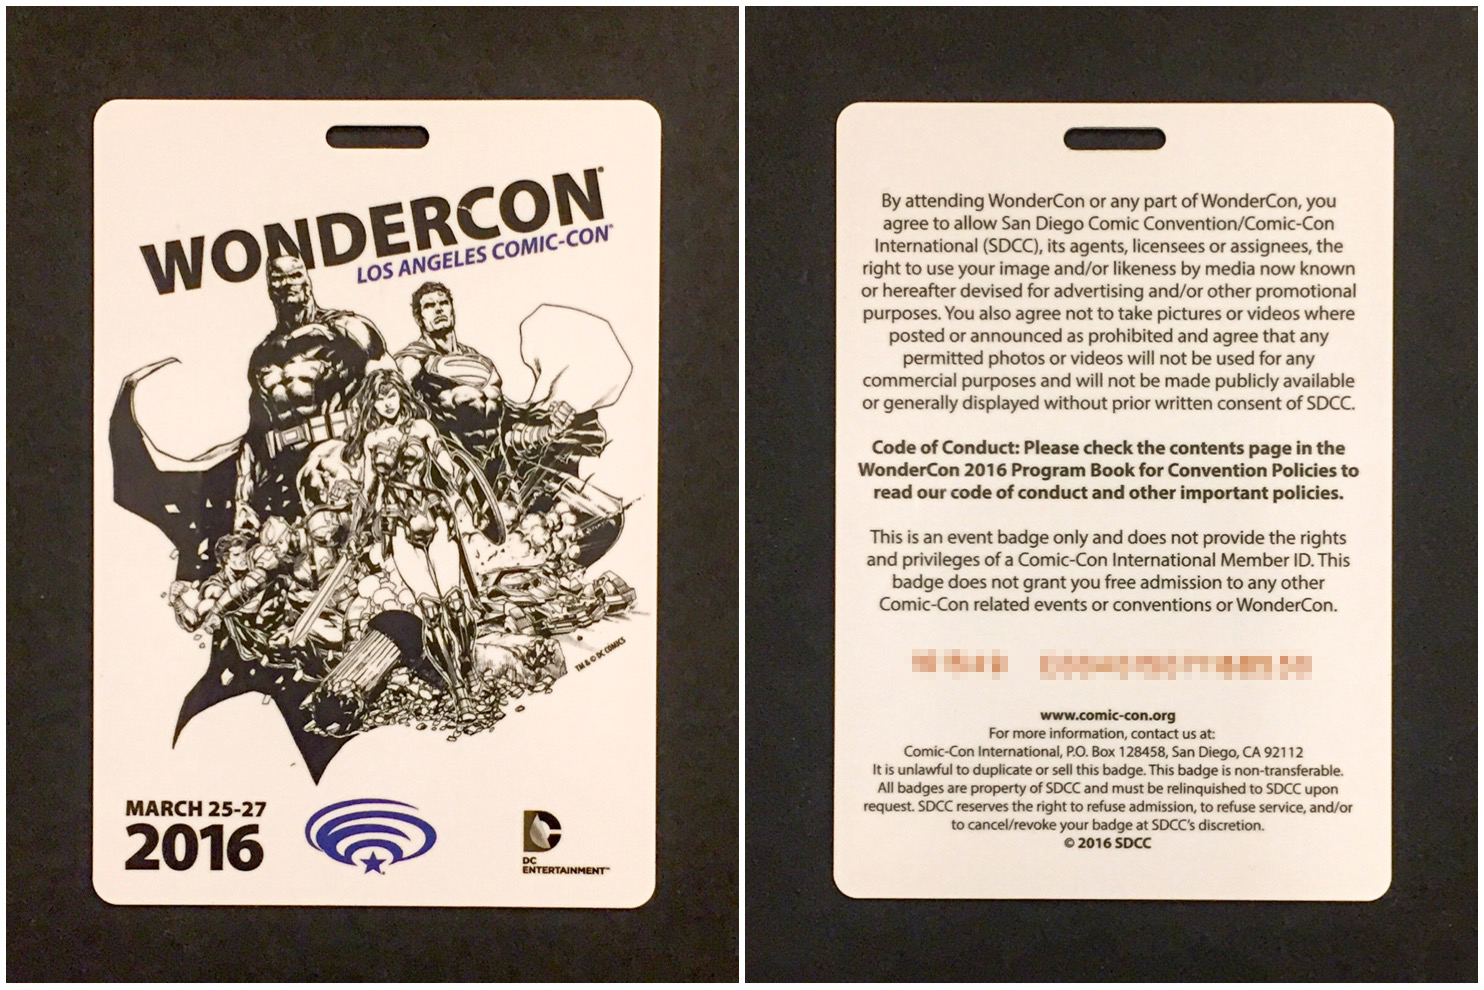 Front and back view of RFID badge outside of badge holder. Awesome artwork by Jason Fabok.